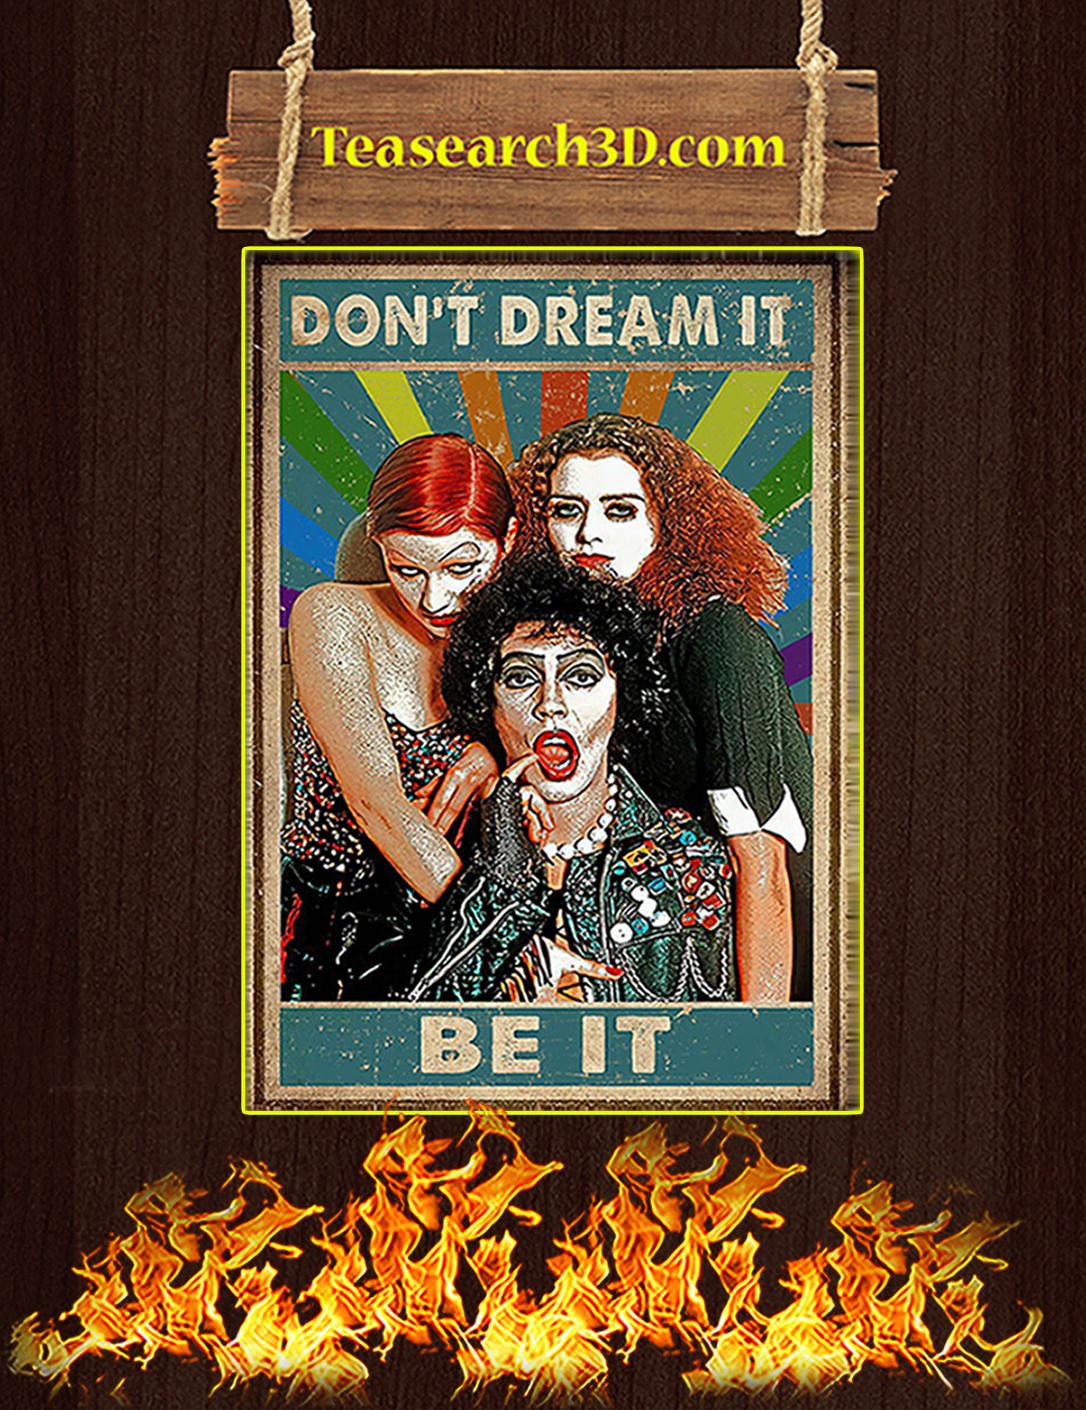 Don't dream it be it poster A2